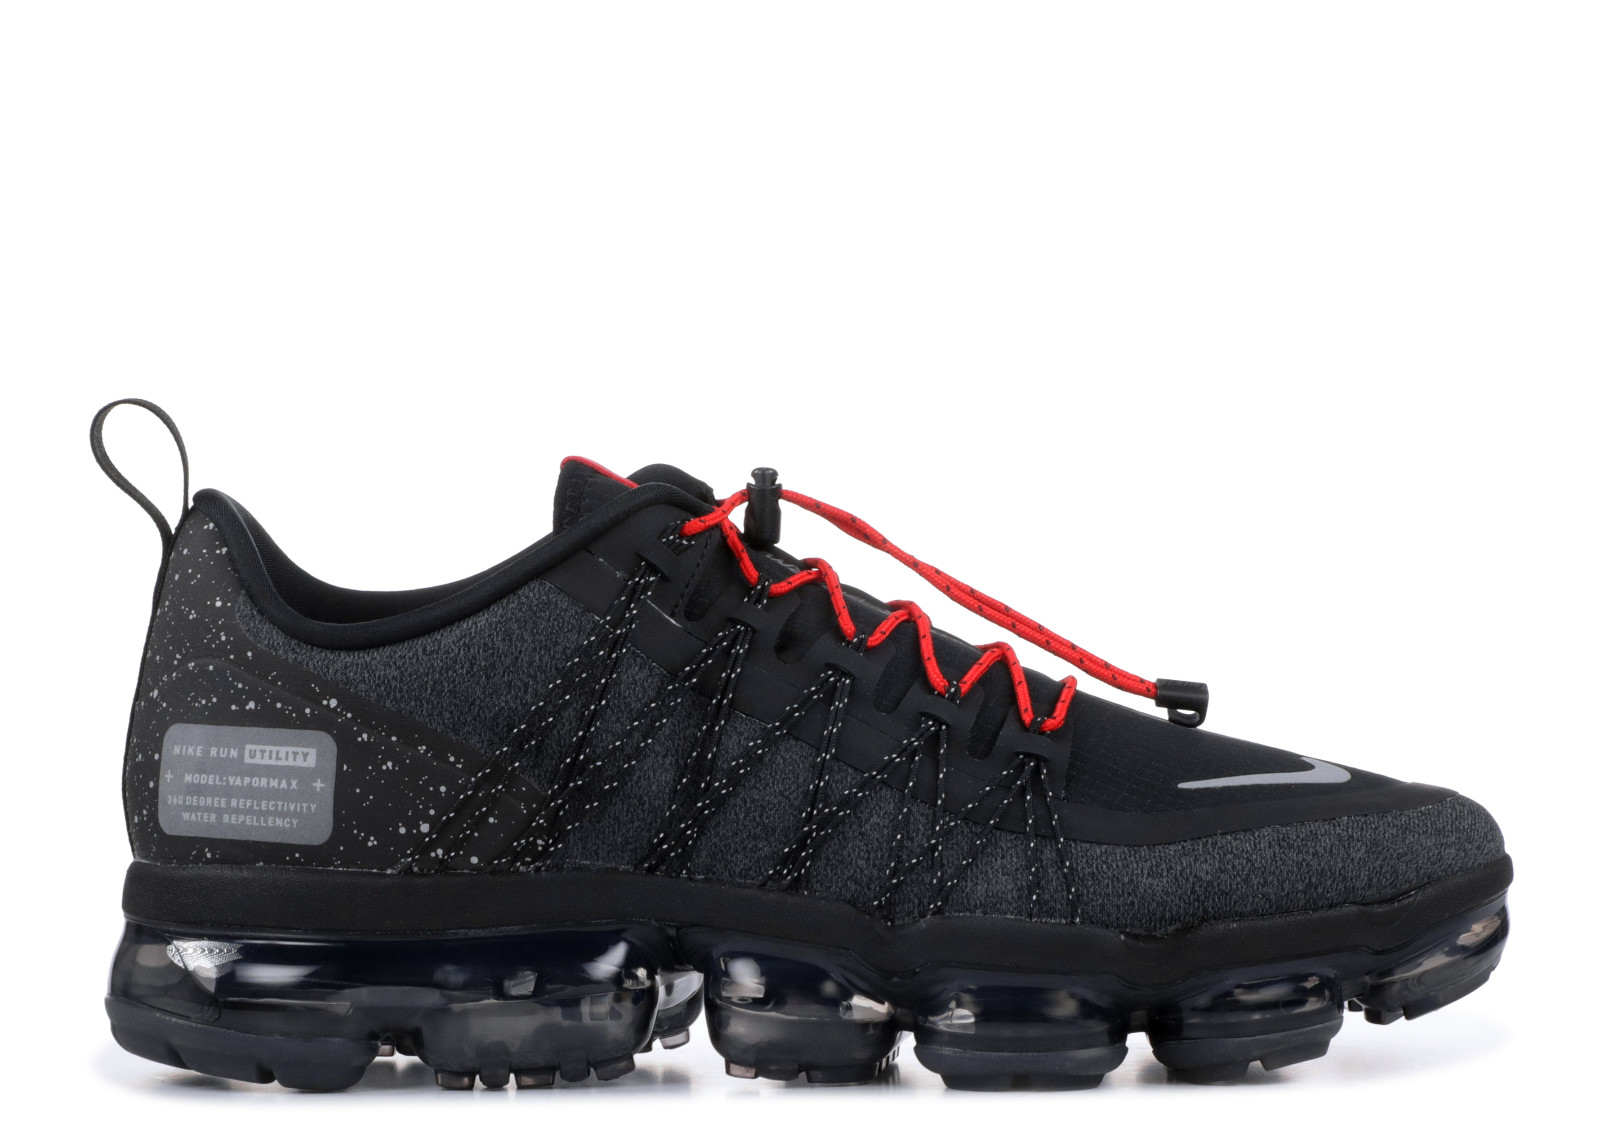 official store performance sportswear order online Nike - Men - Nike Air Vapormax Run Utility - Aq8810-001 - Size 14